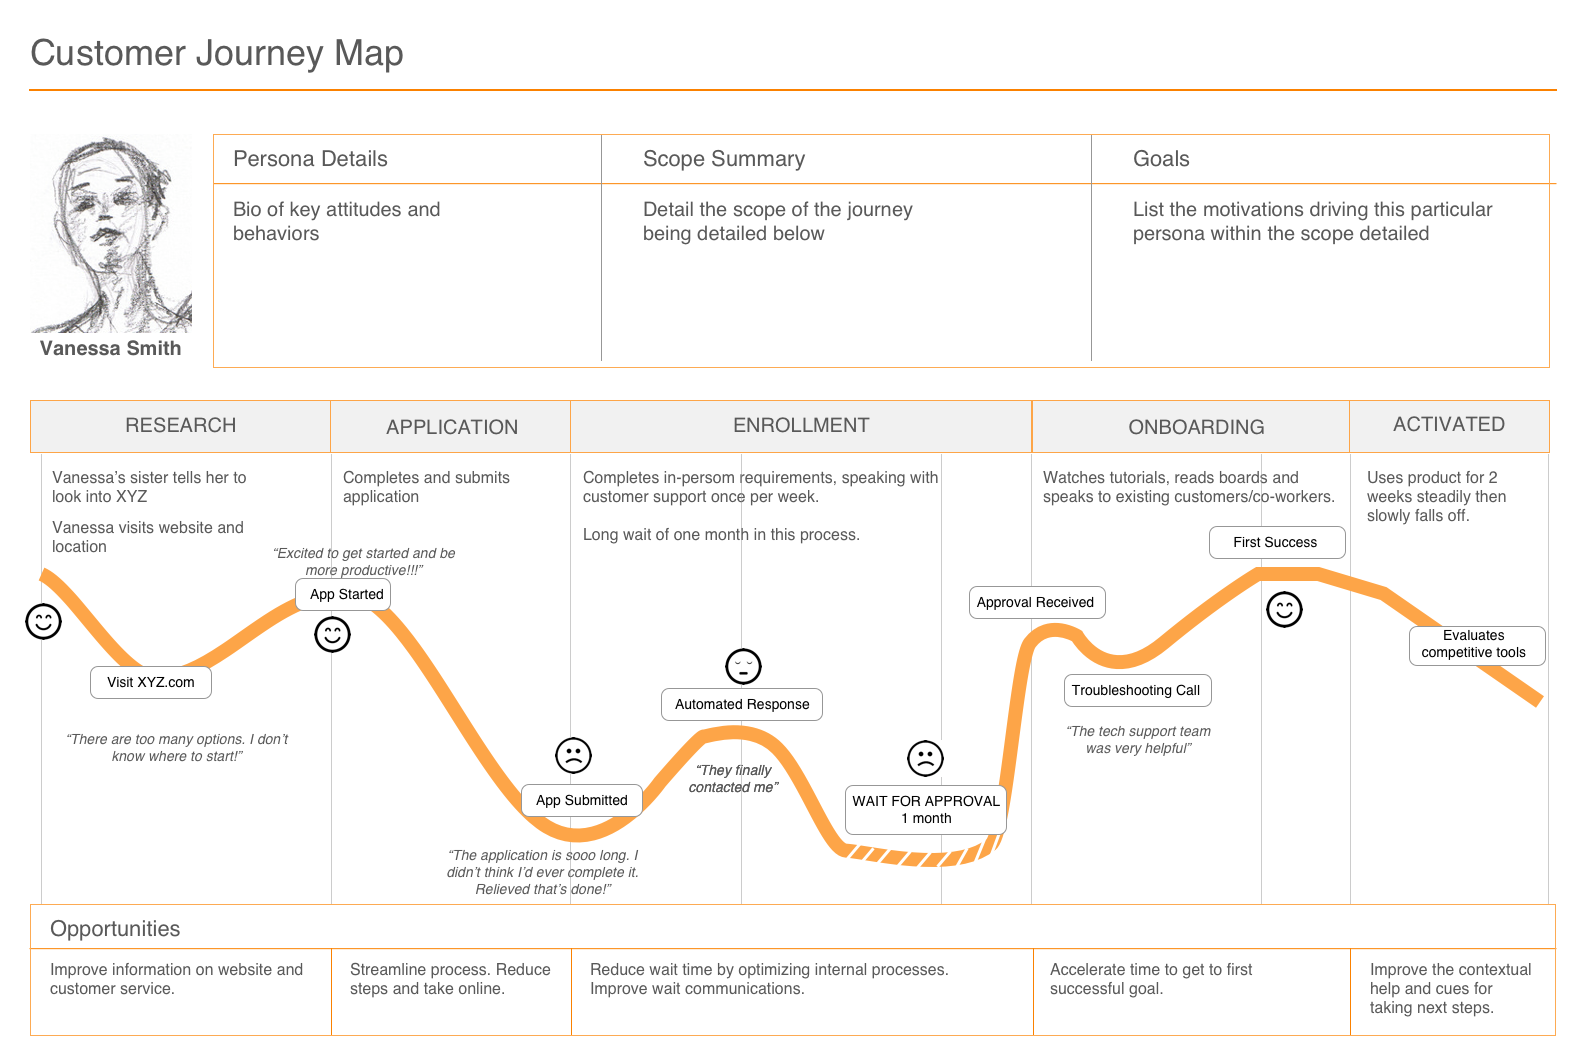 Table or graph for mapping a customer journey